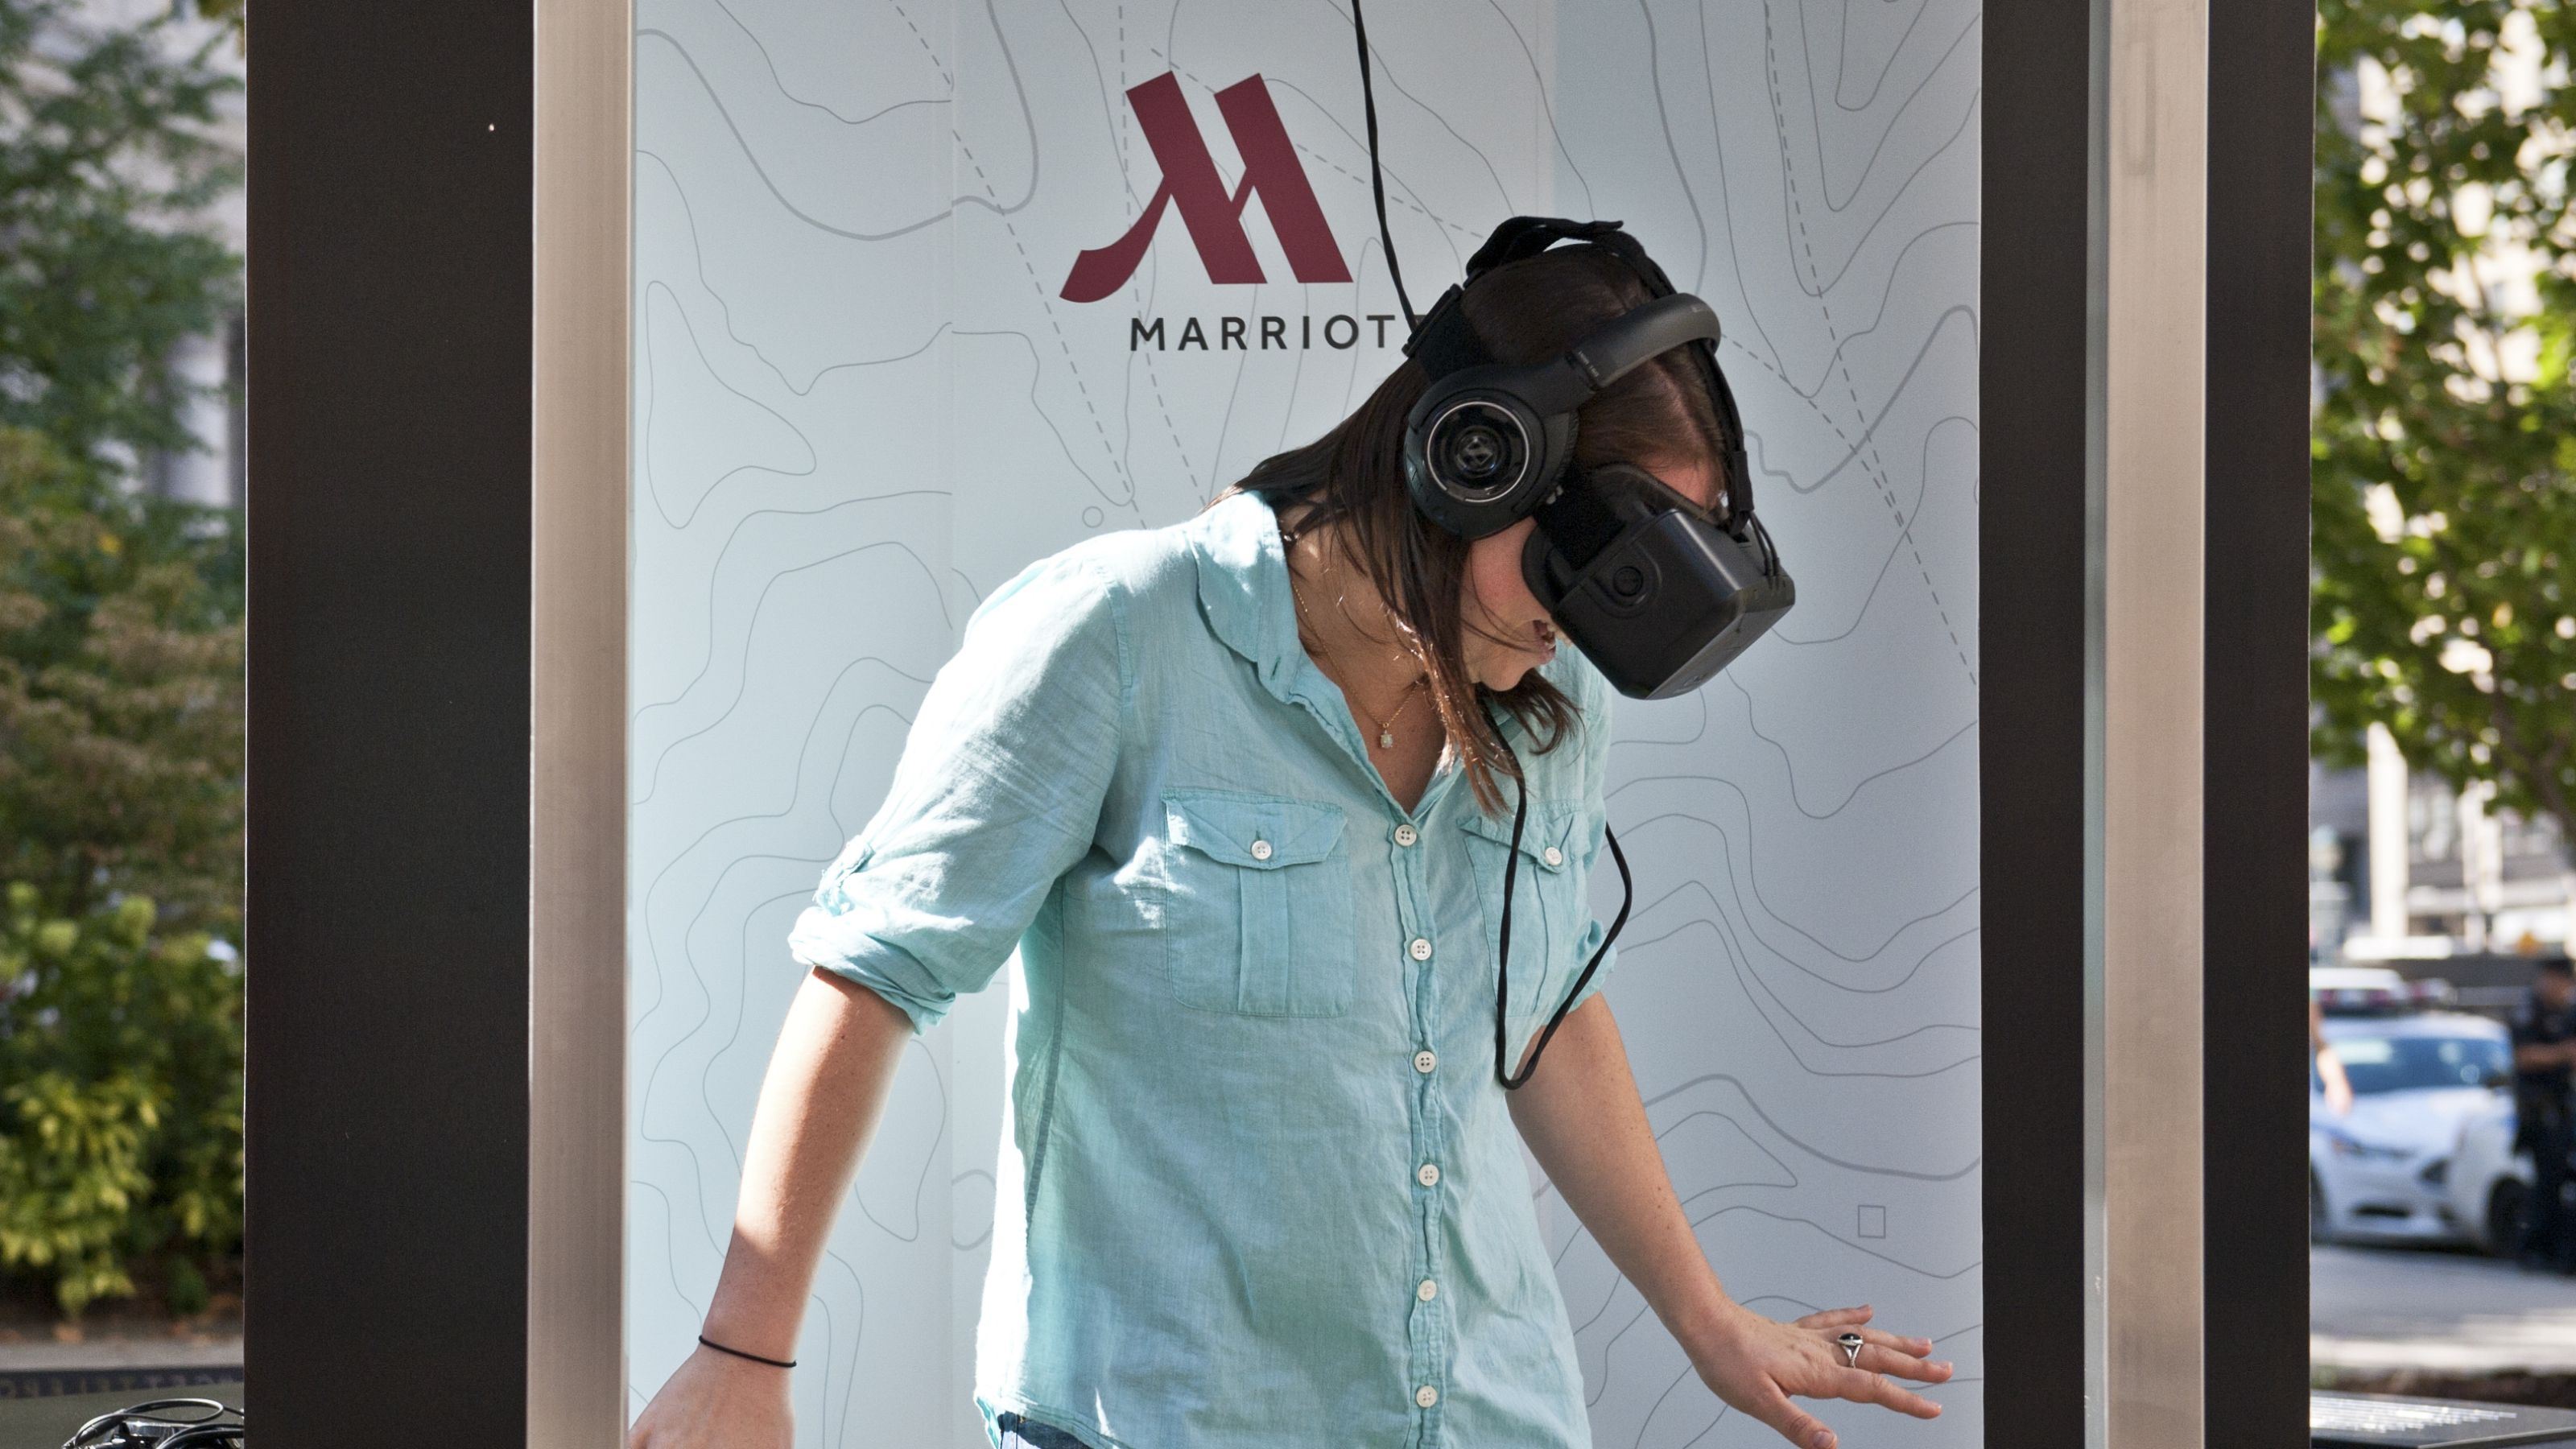 Marriott Hotels and Resorts is transporting people all around the world through virtual travel!! Click below to find out more!